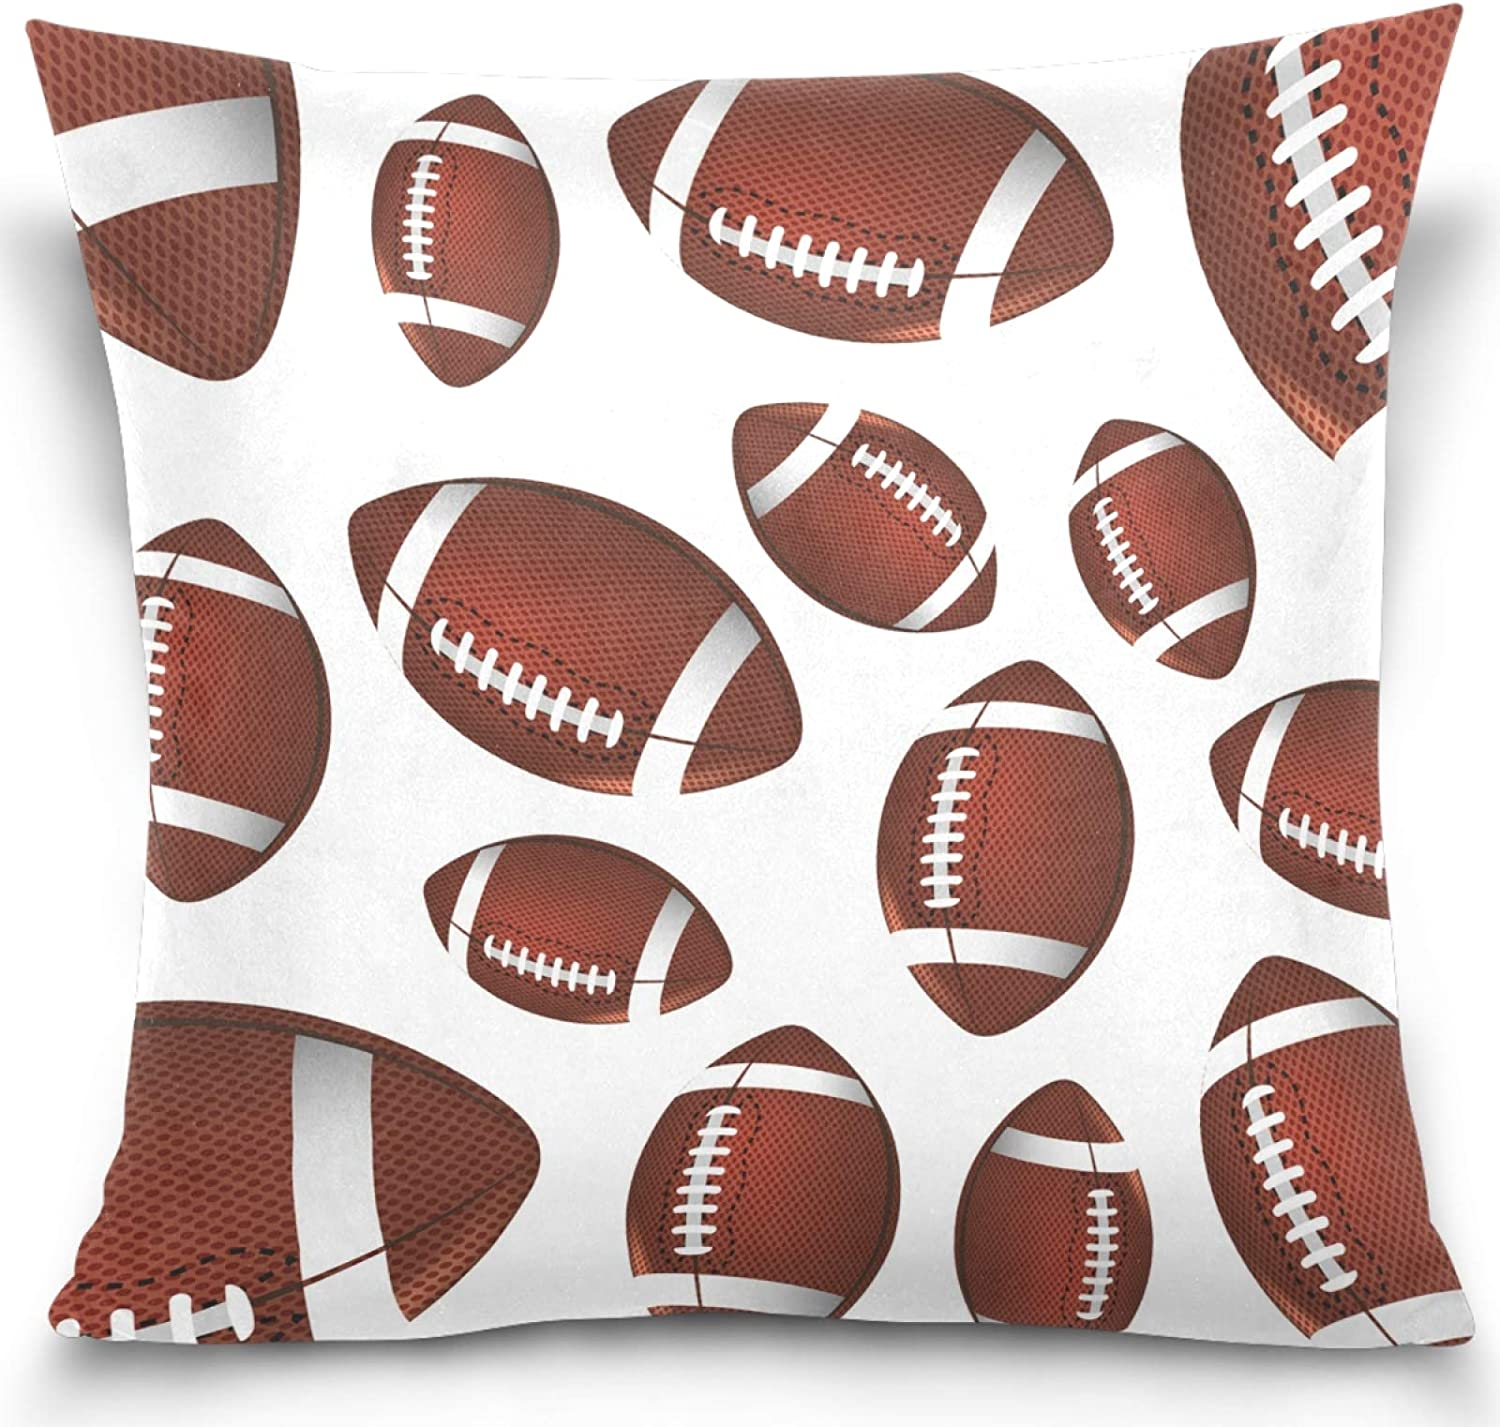 Kaariok Rugby Football Sport Print Pillow Cover Square Soft Cotton Velvet Pillowcase Cushion Case for Sofa Couch Bed Home Car Decor 20